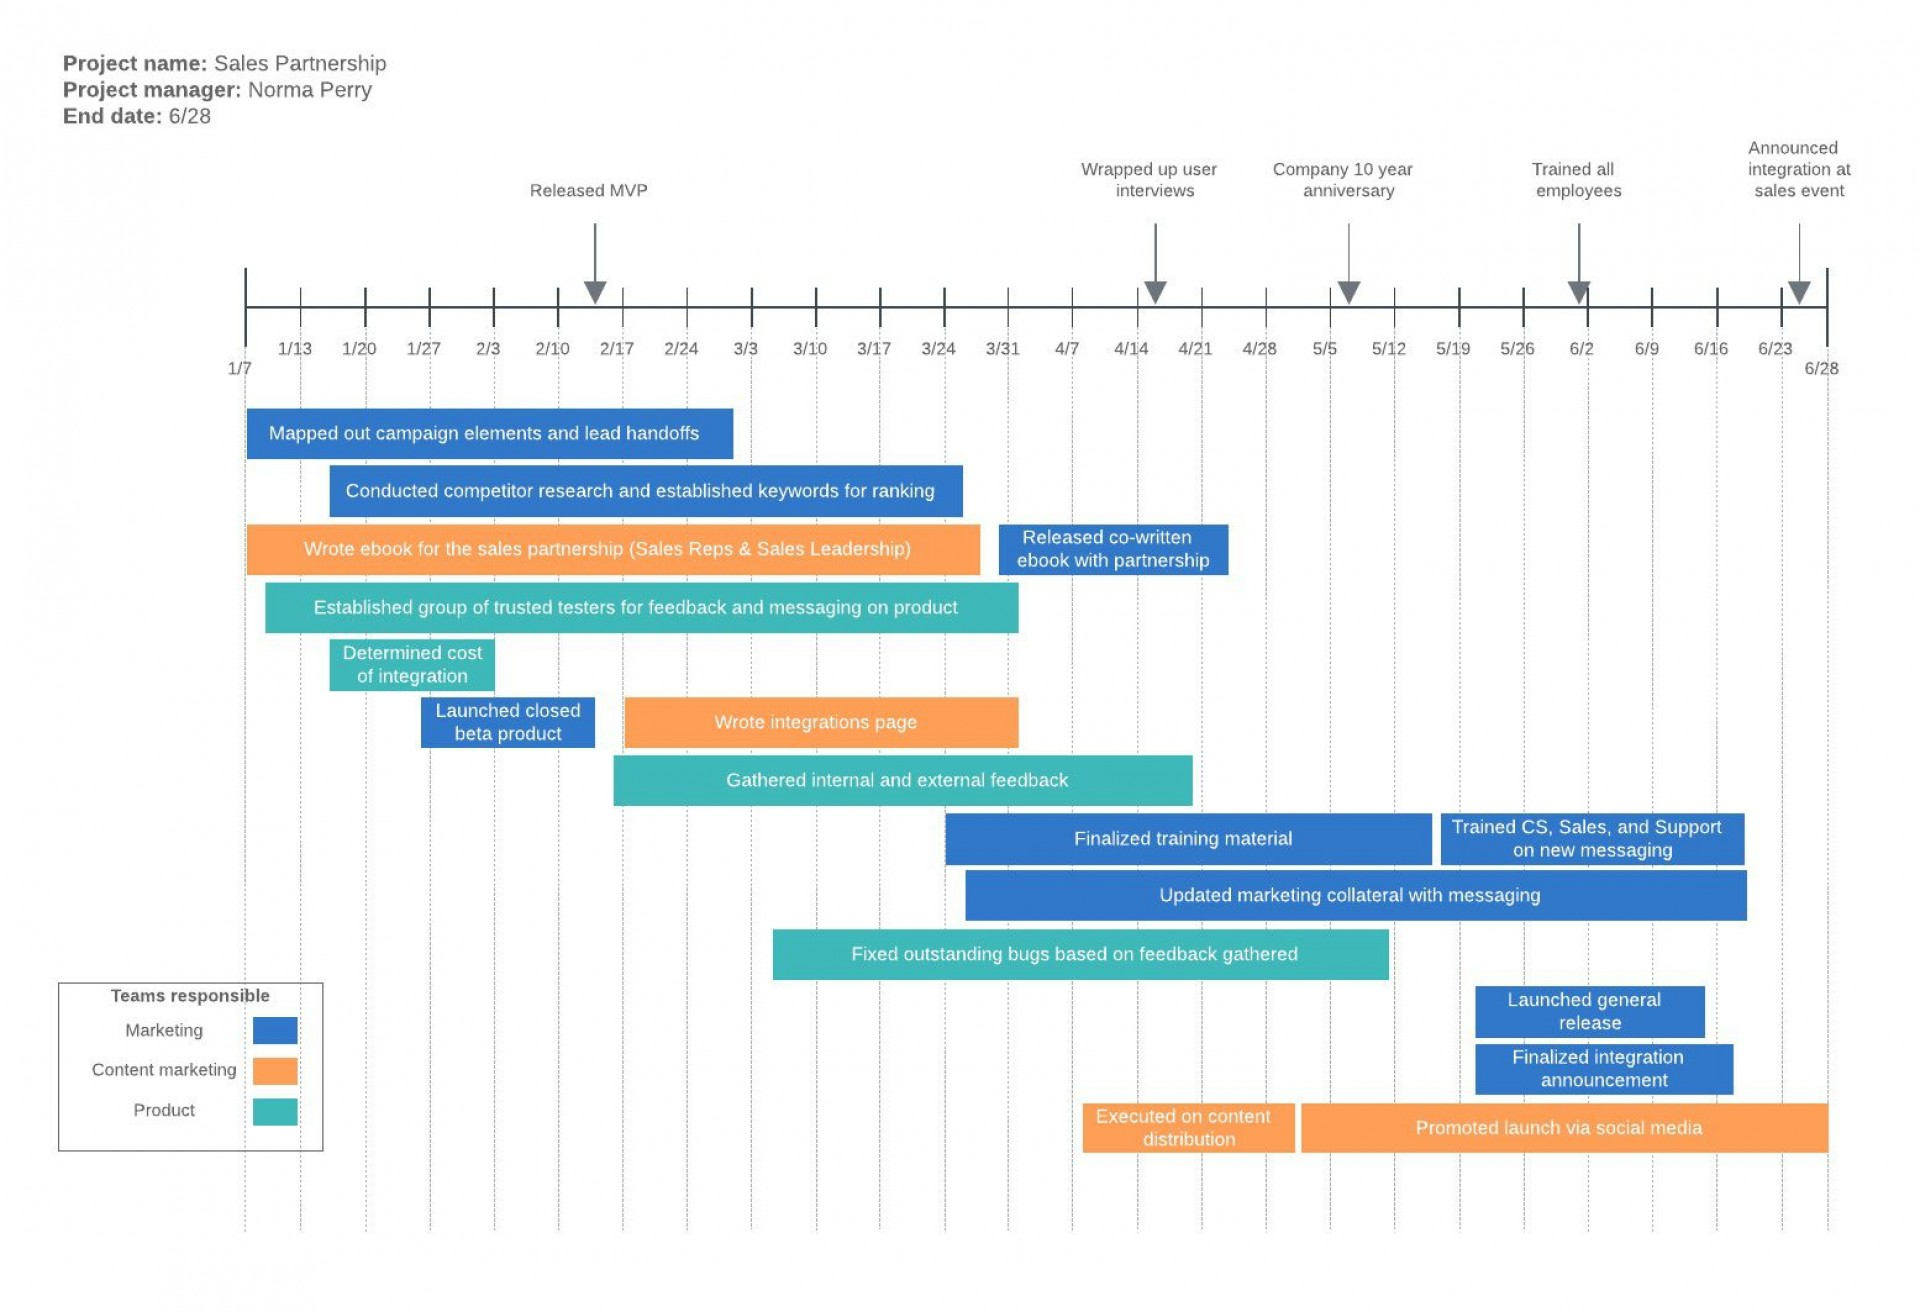 007 Unusual Microsoft Excel Timeline Template Highest Clarity  Templates Project Free Download1920